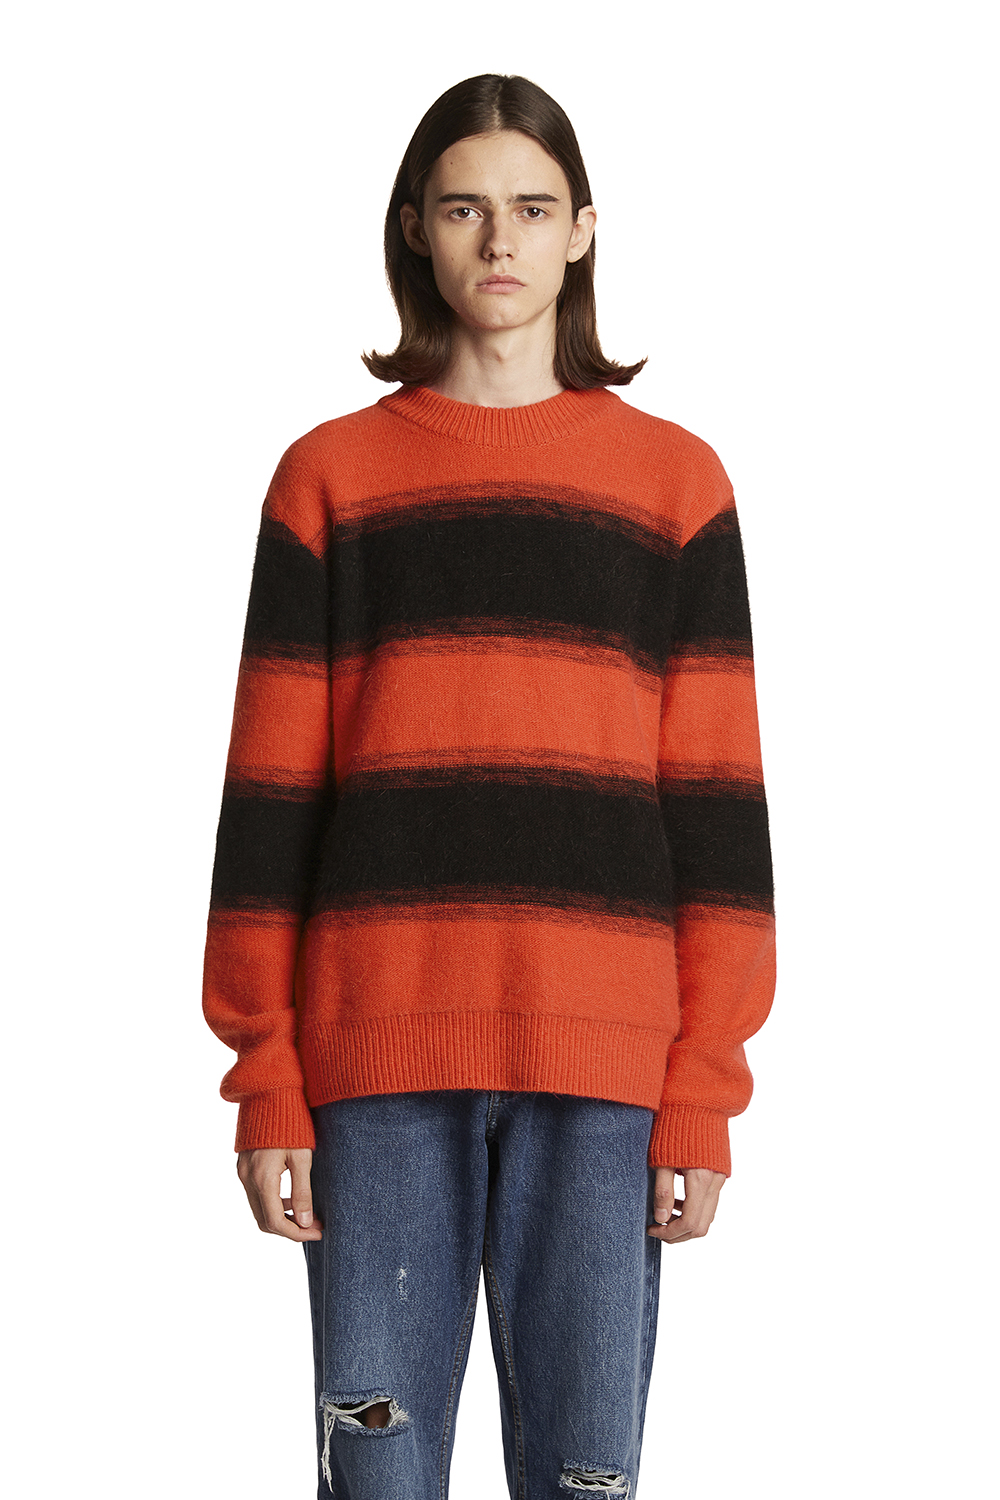 (SAMPLE) Angora Stripe Sweater